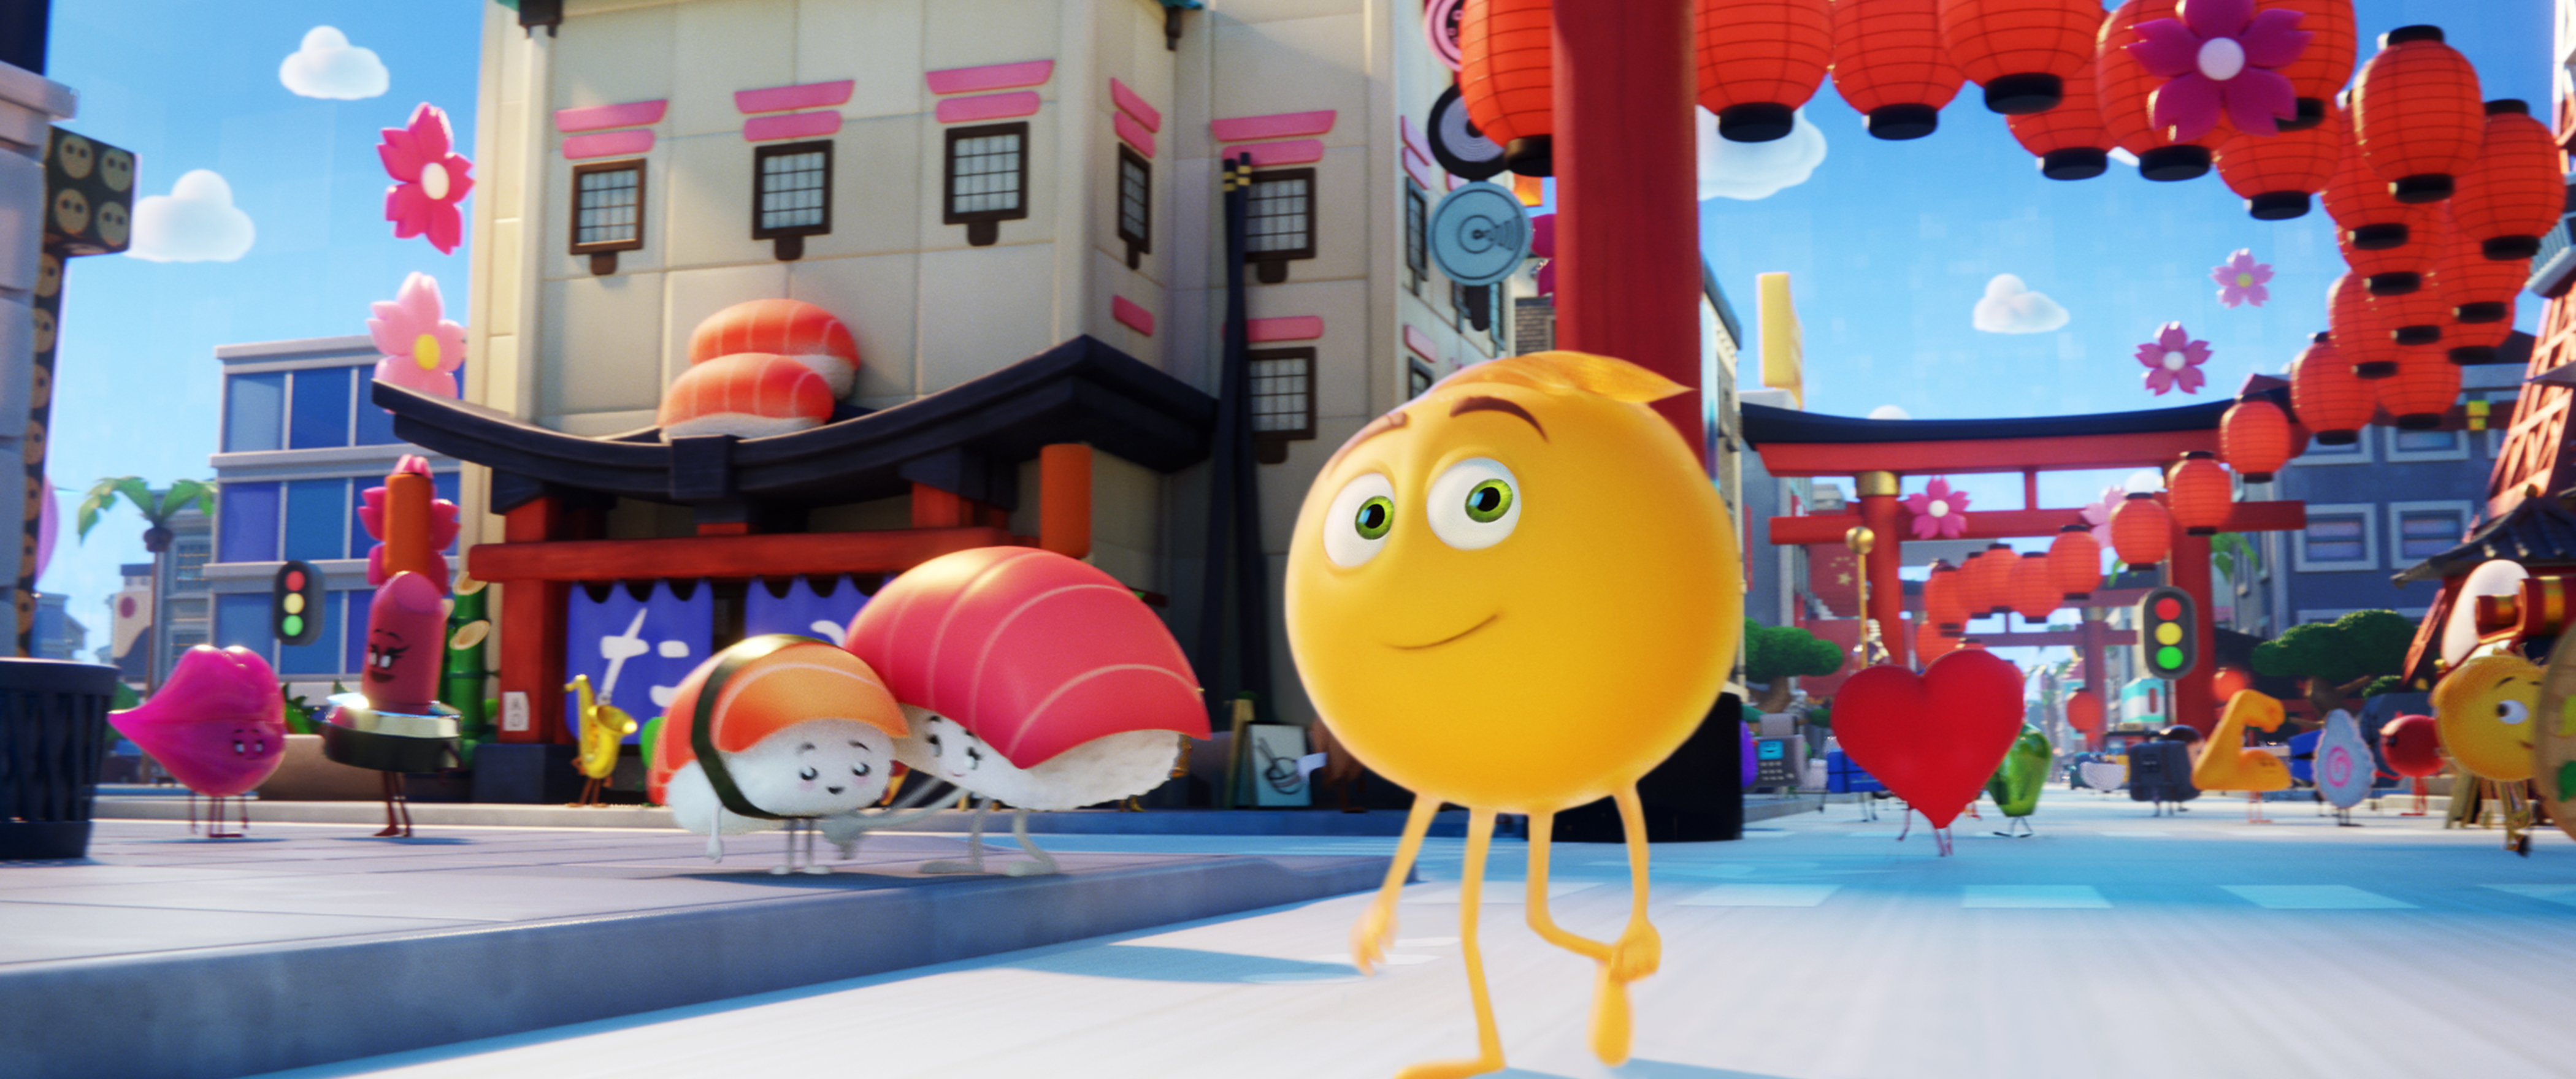 The Emoji Movie Gallery 40